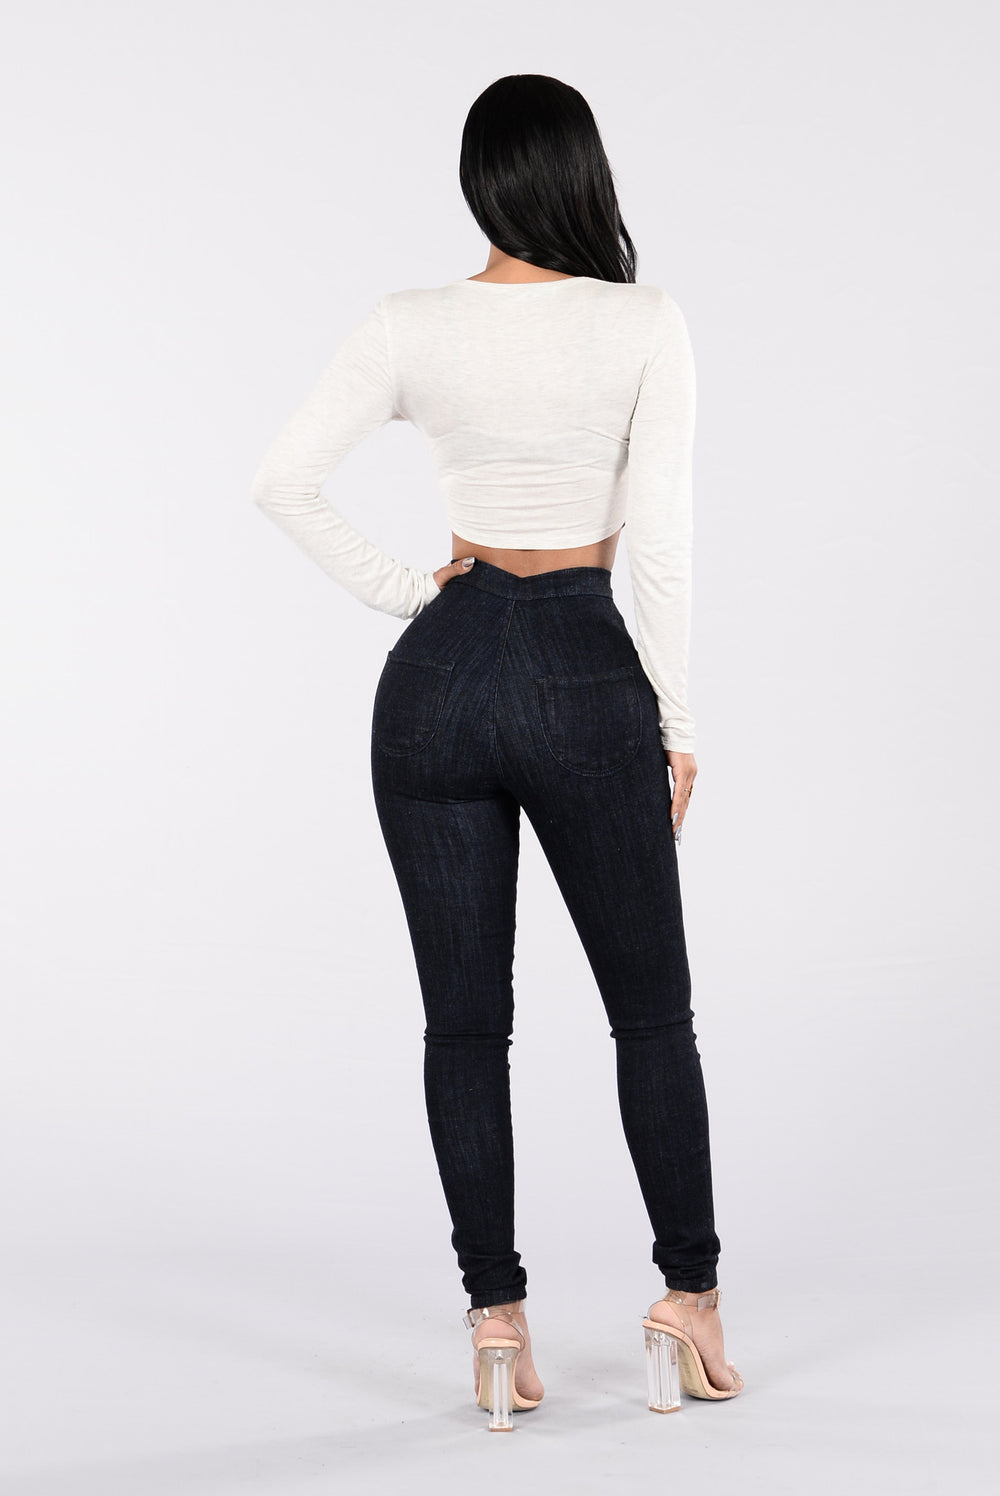 Easily My Fave Jeans - Dark Blue